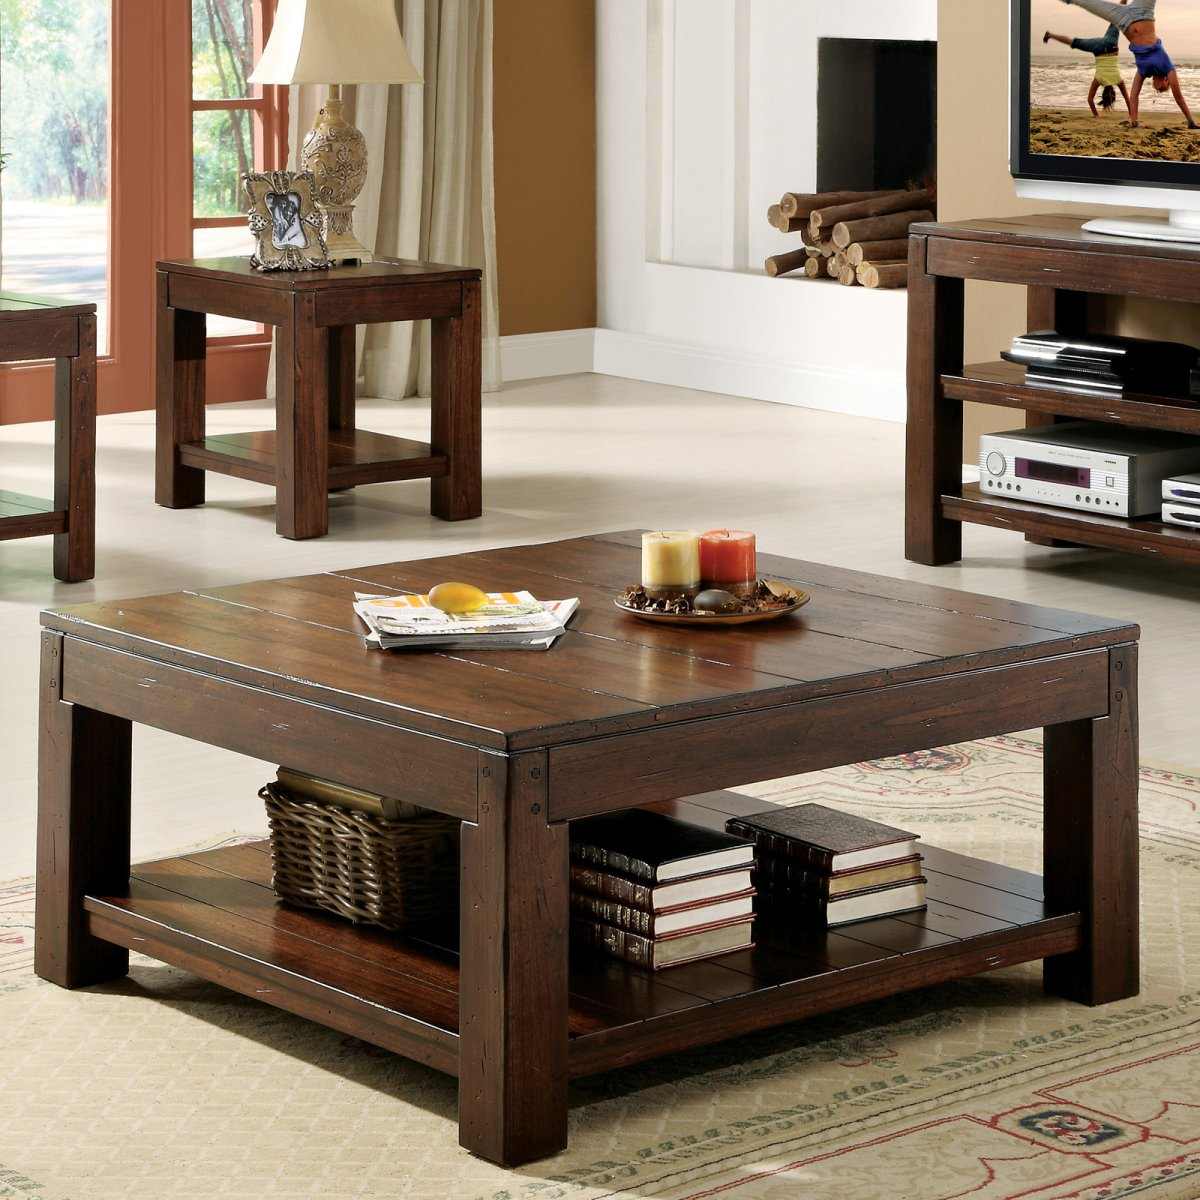 For Sale Cherry Wood Coffee Table: Cherry Wood Dark Wood Coffee Table Set For Sale